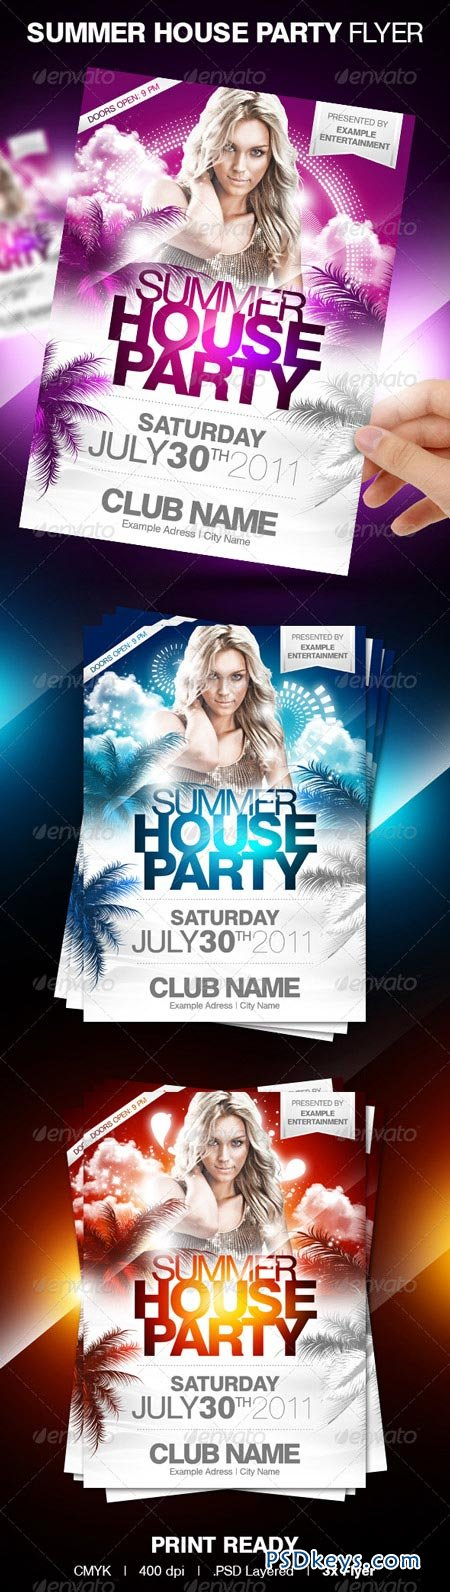 Summer House Party Flyer 148840